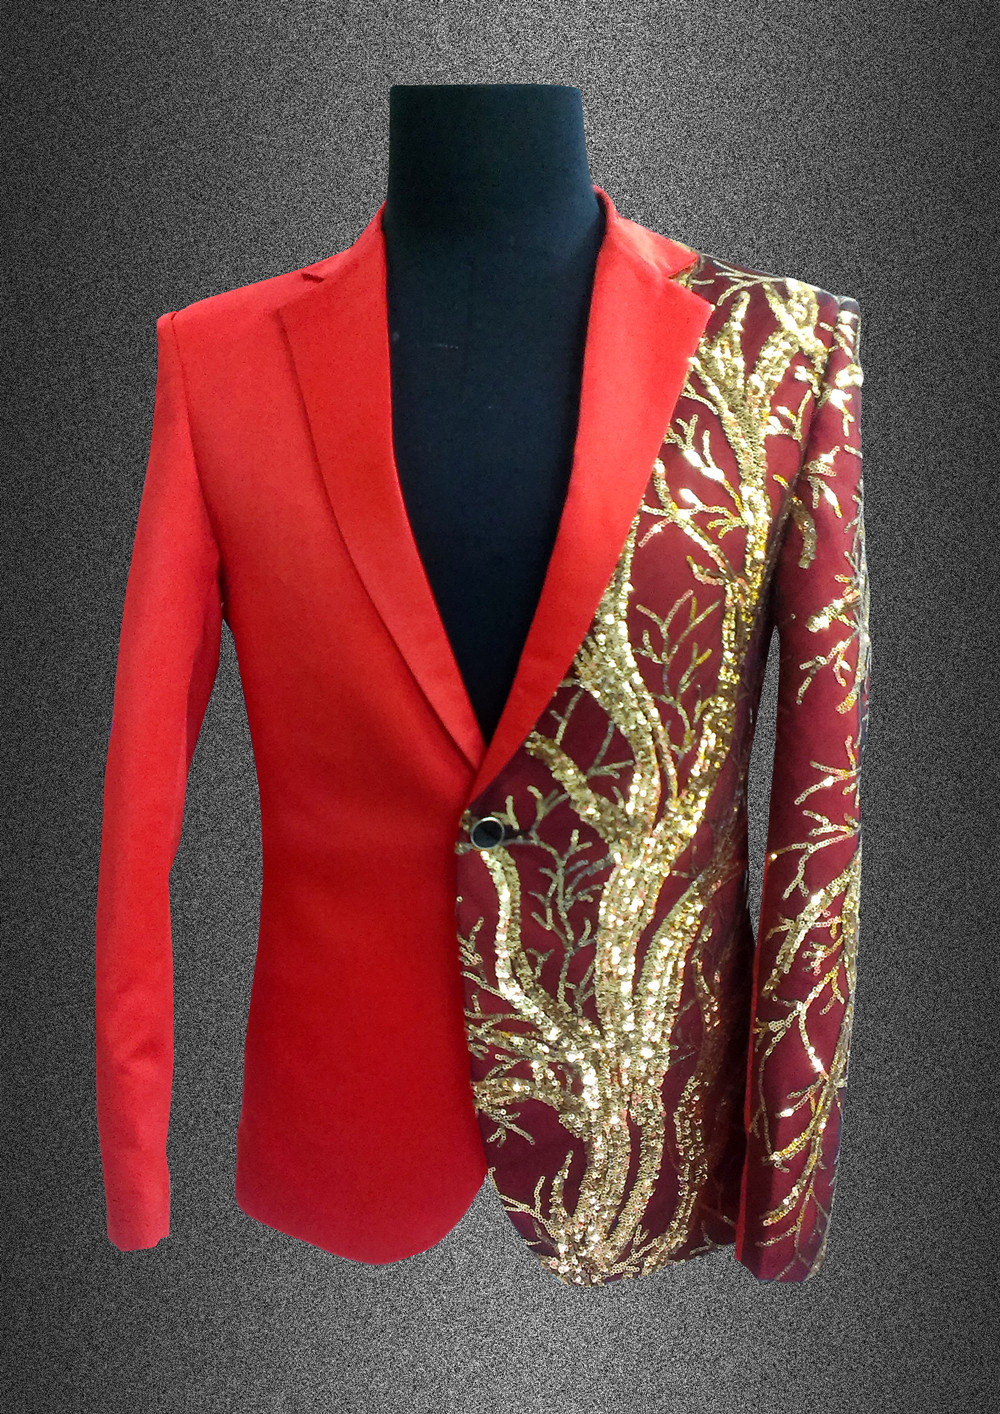 singer blazer Male formal dress costume men's clothing paillette suits clothes for dancer star performance nightclub party bar 4